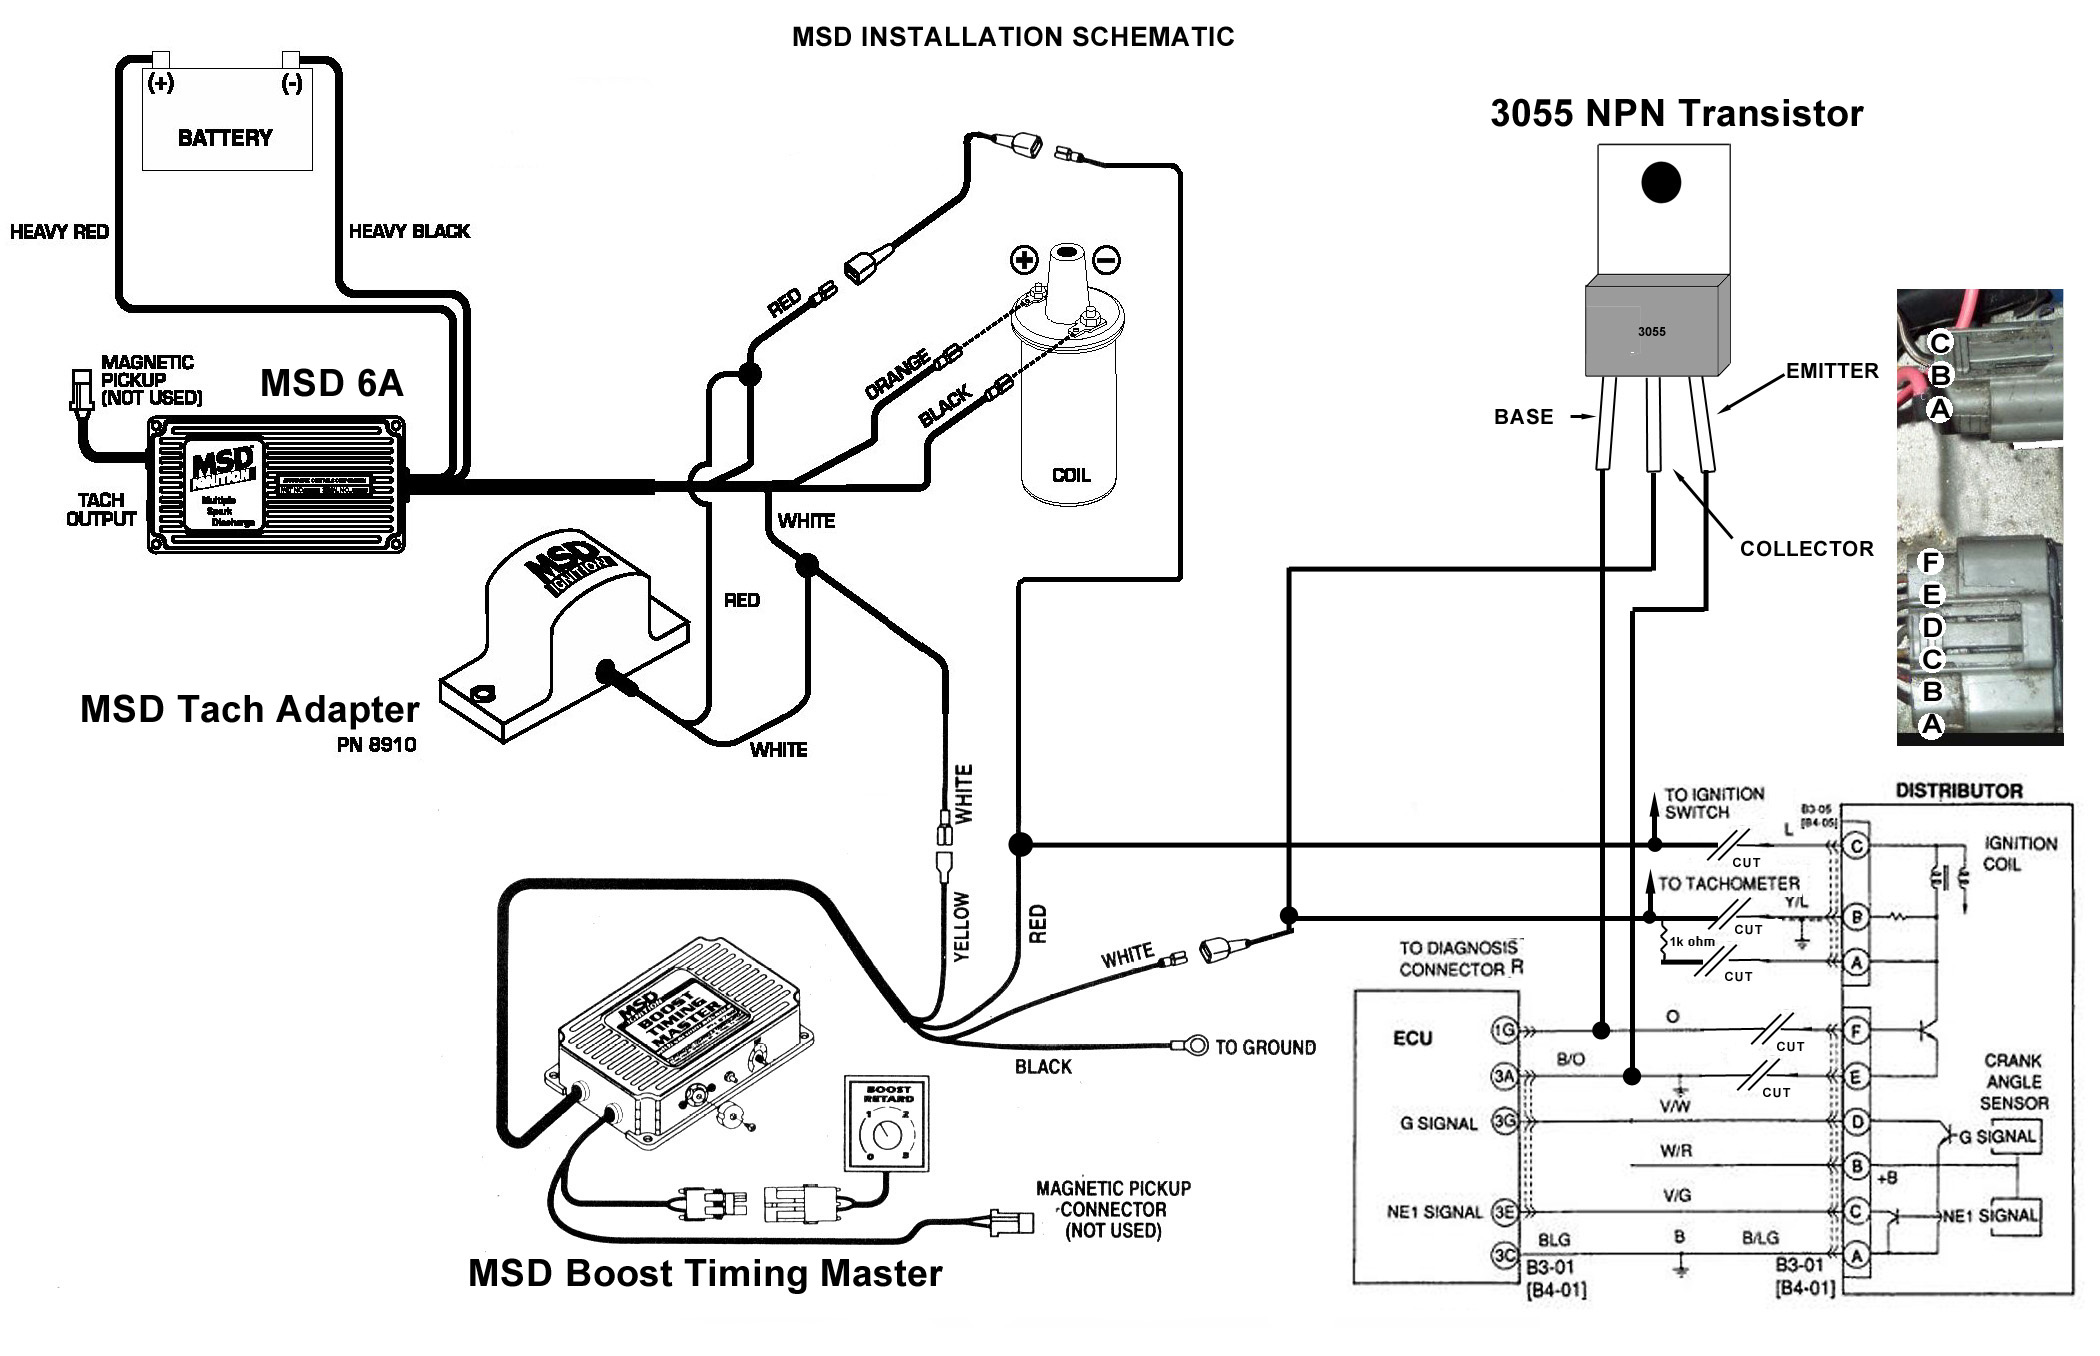 Wiring Diagram 93 Mazda Protege And Schematics Mx3 Radio Msd Mx 6 Forum Rh Mx6 Com